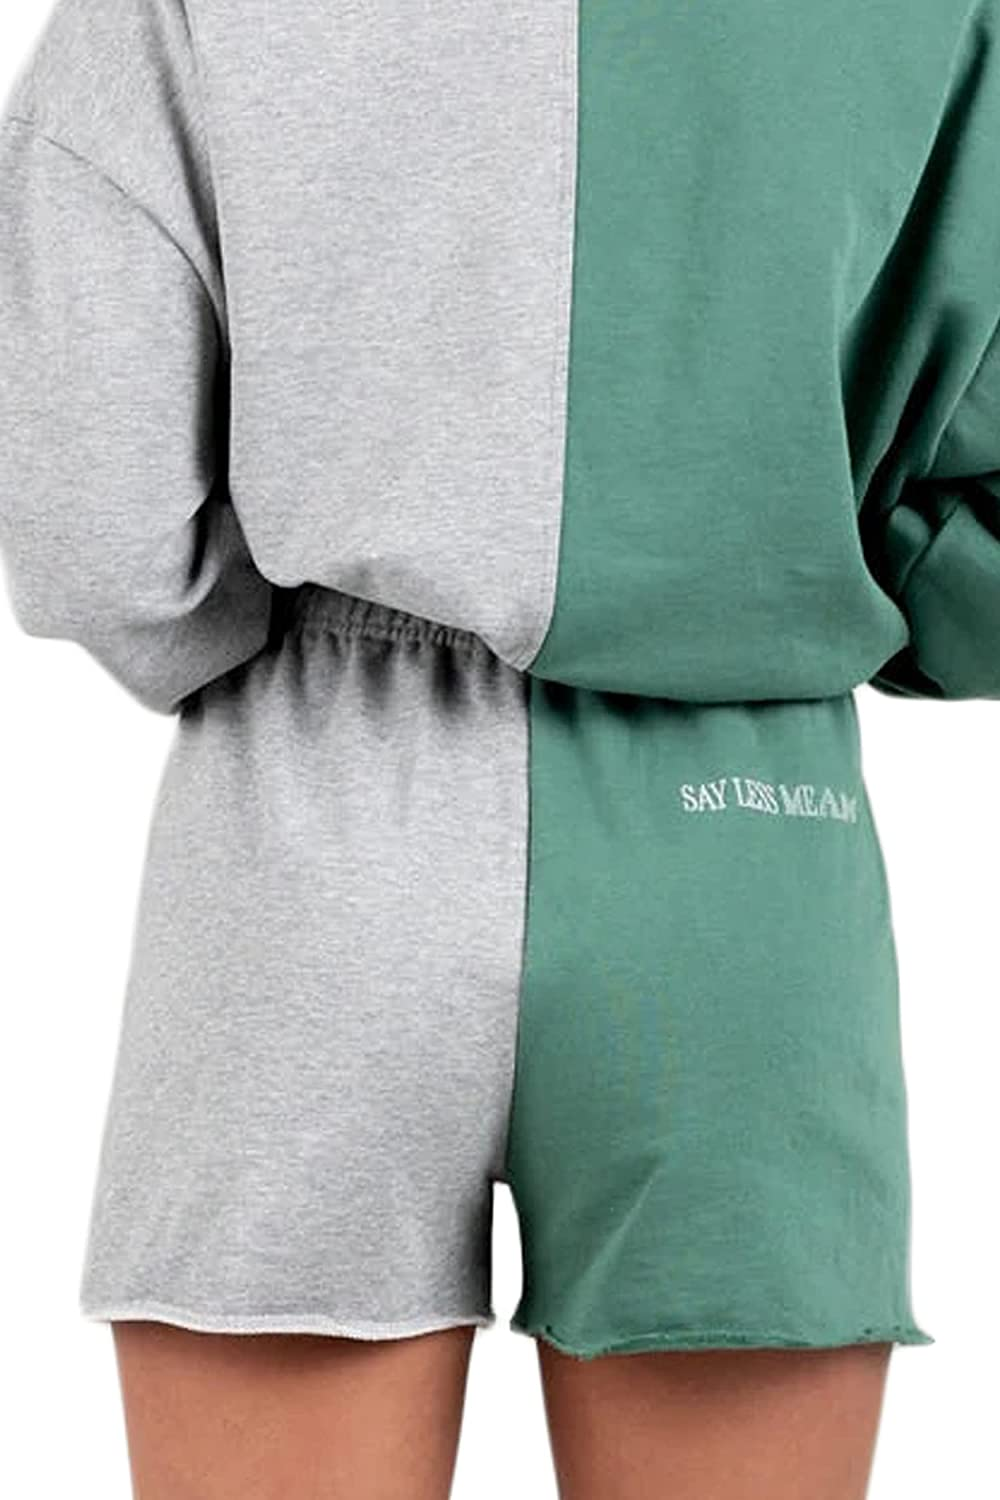 The Mayfair Group Women's Say Less Mean More Soft Two-Tone Sweat